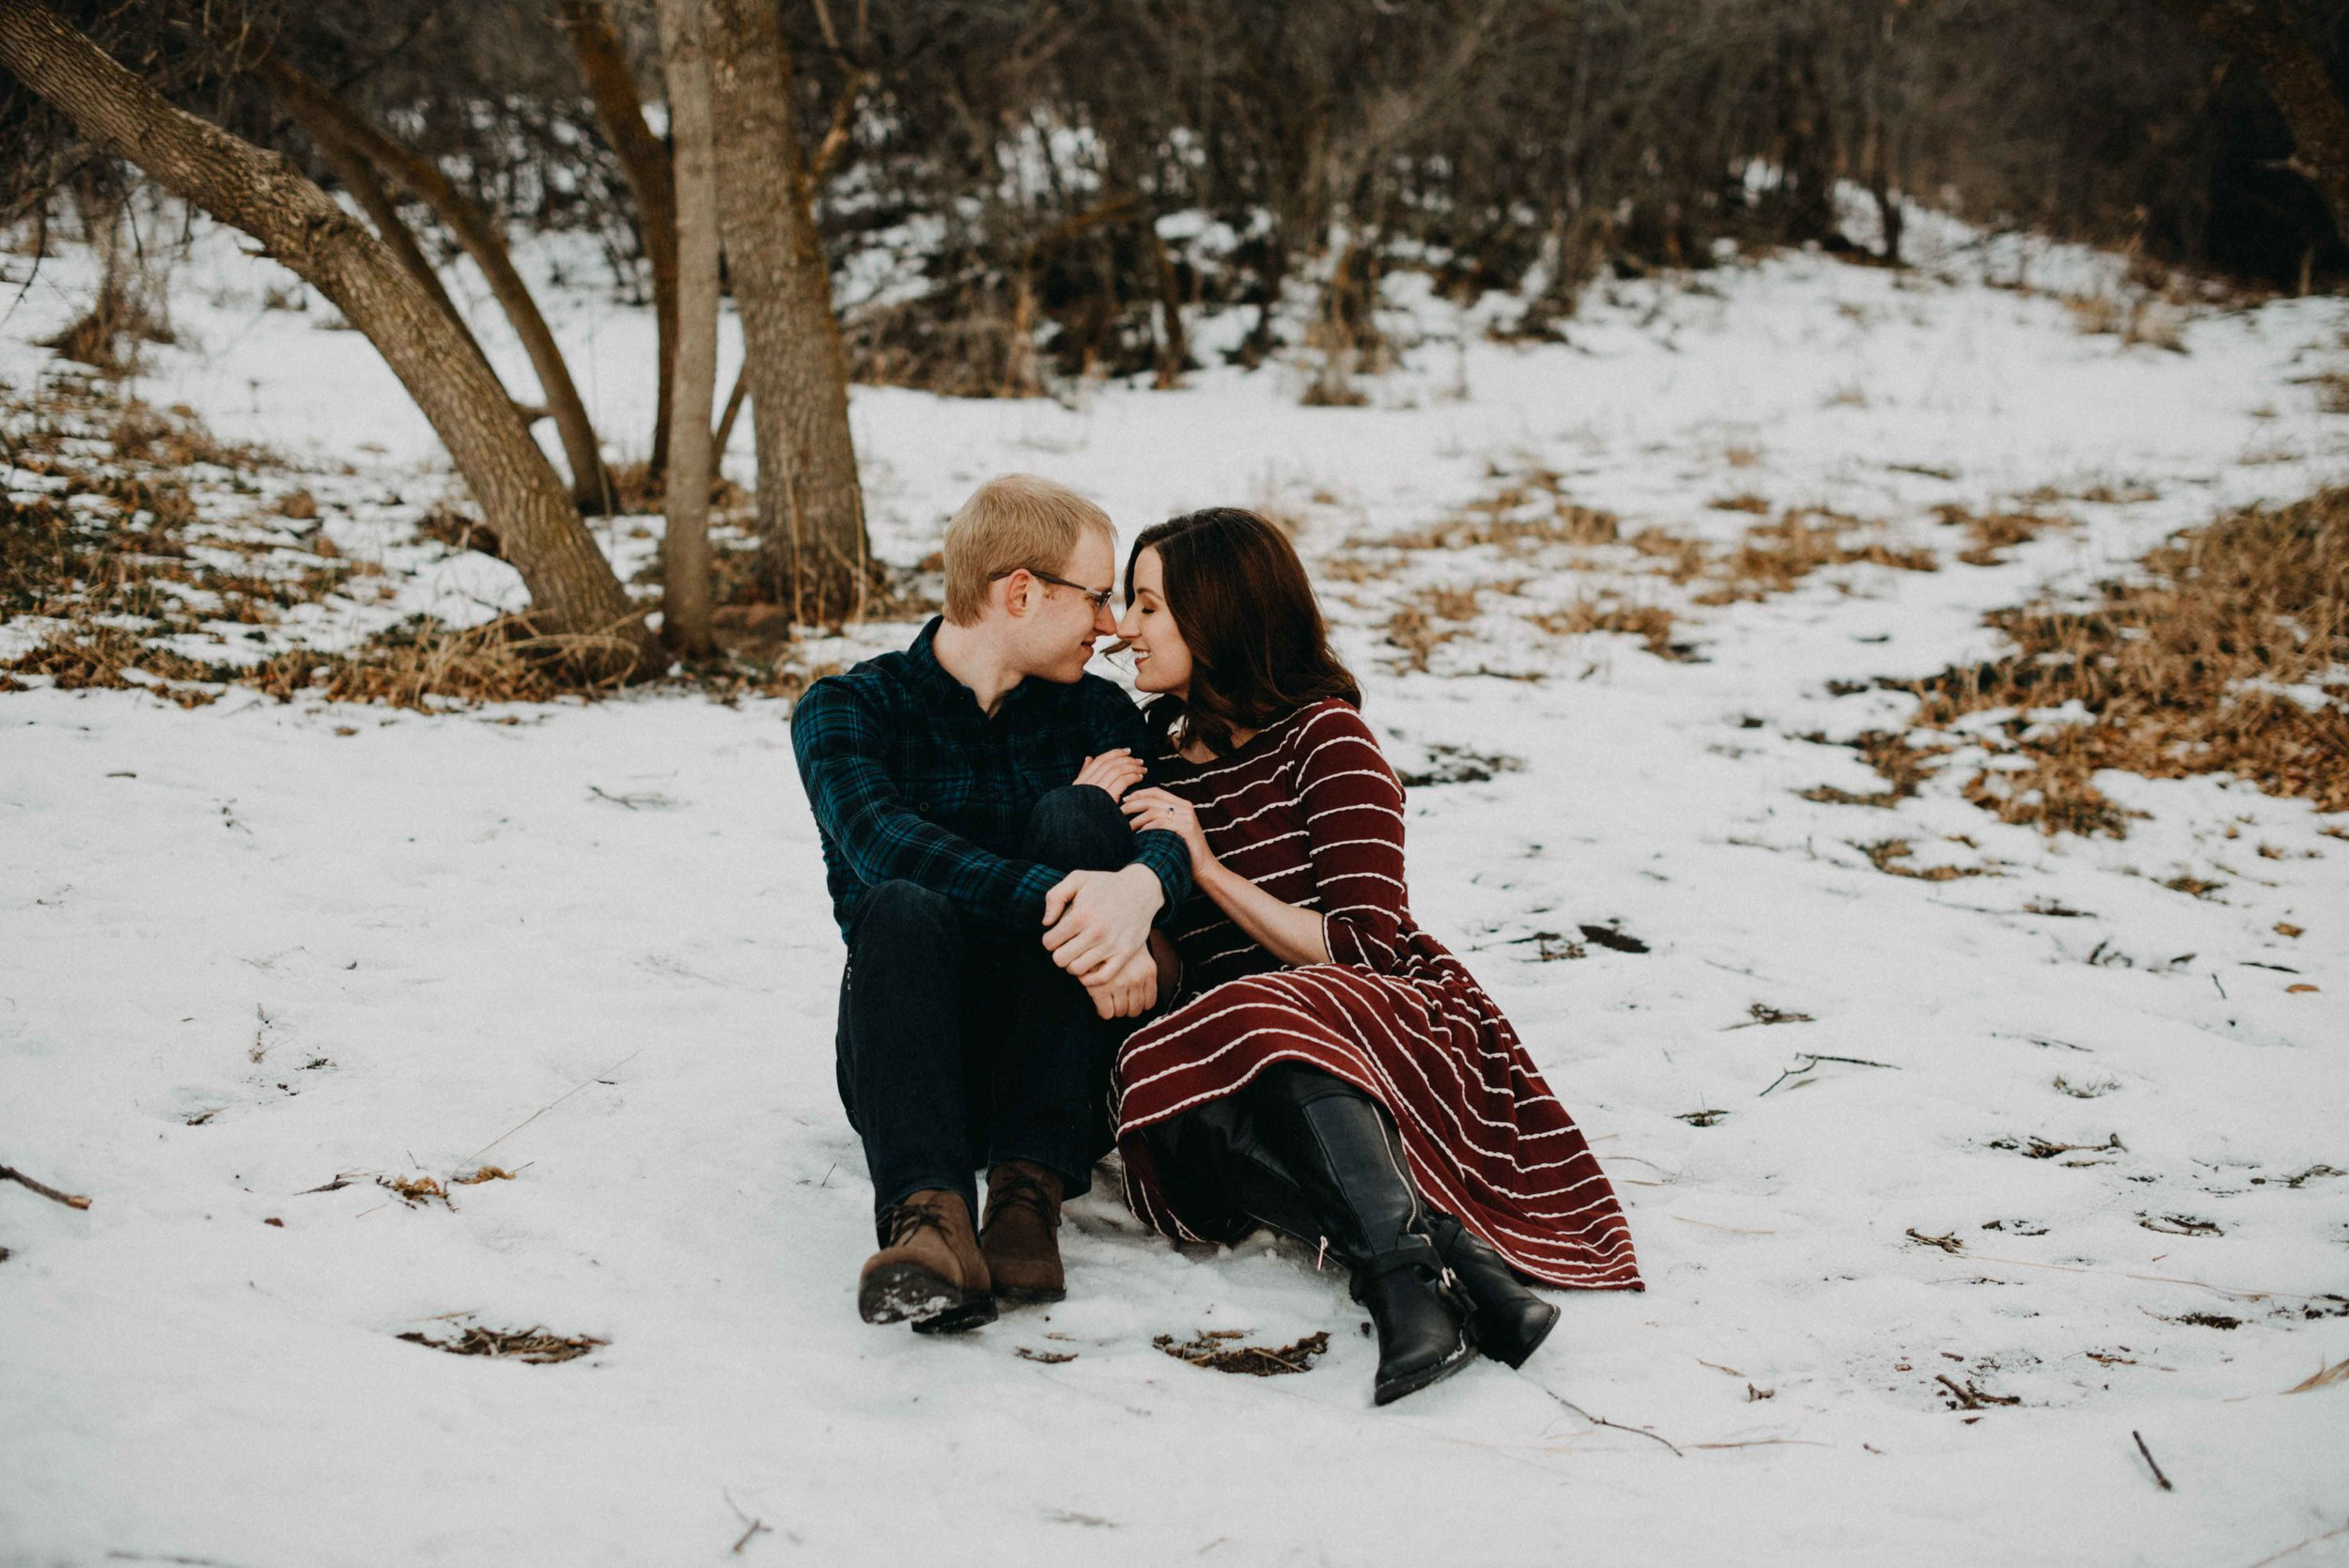 Trinity and Peter hugging in the snow during their snowy engagement session. We went to Chautauqua and spent the afternoon hiking around for their couples portraits!